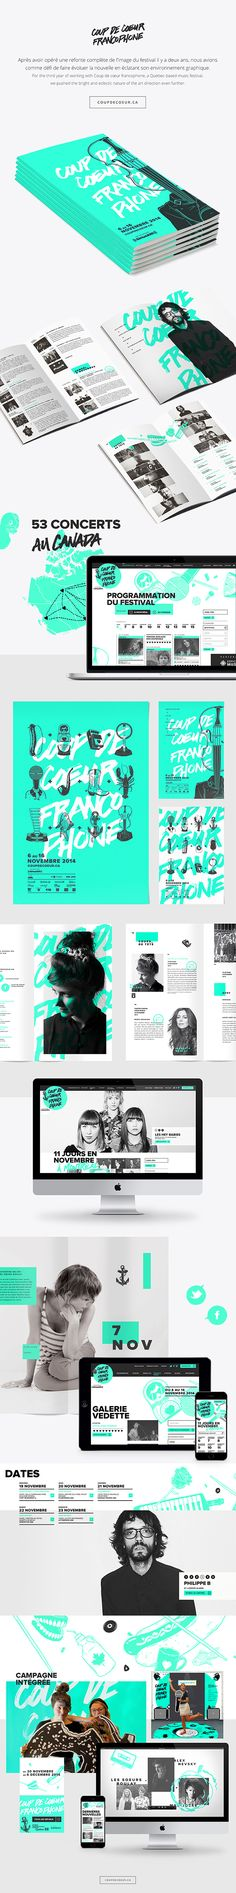 The design for the 2014 music festival Coup de cœur francophone.Created at Akufen.Illustrations by Arno Jean.2013 design by Philippe Cossette.Brochure in collaboration with Sarah Gobeil.Web Design by Catherine Marois.Executions by Sarah Rousseau a…